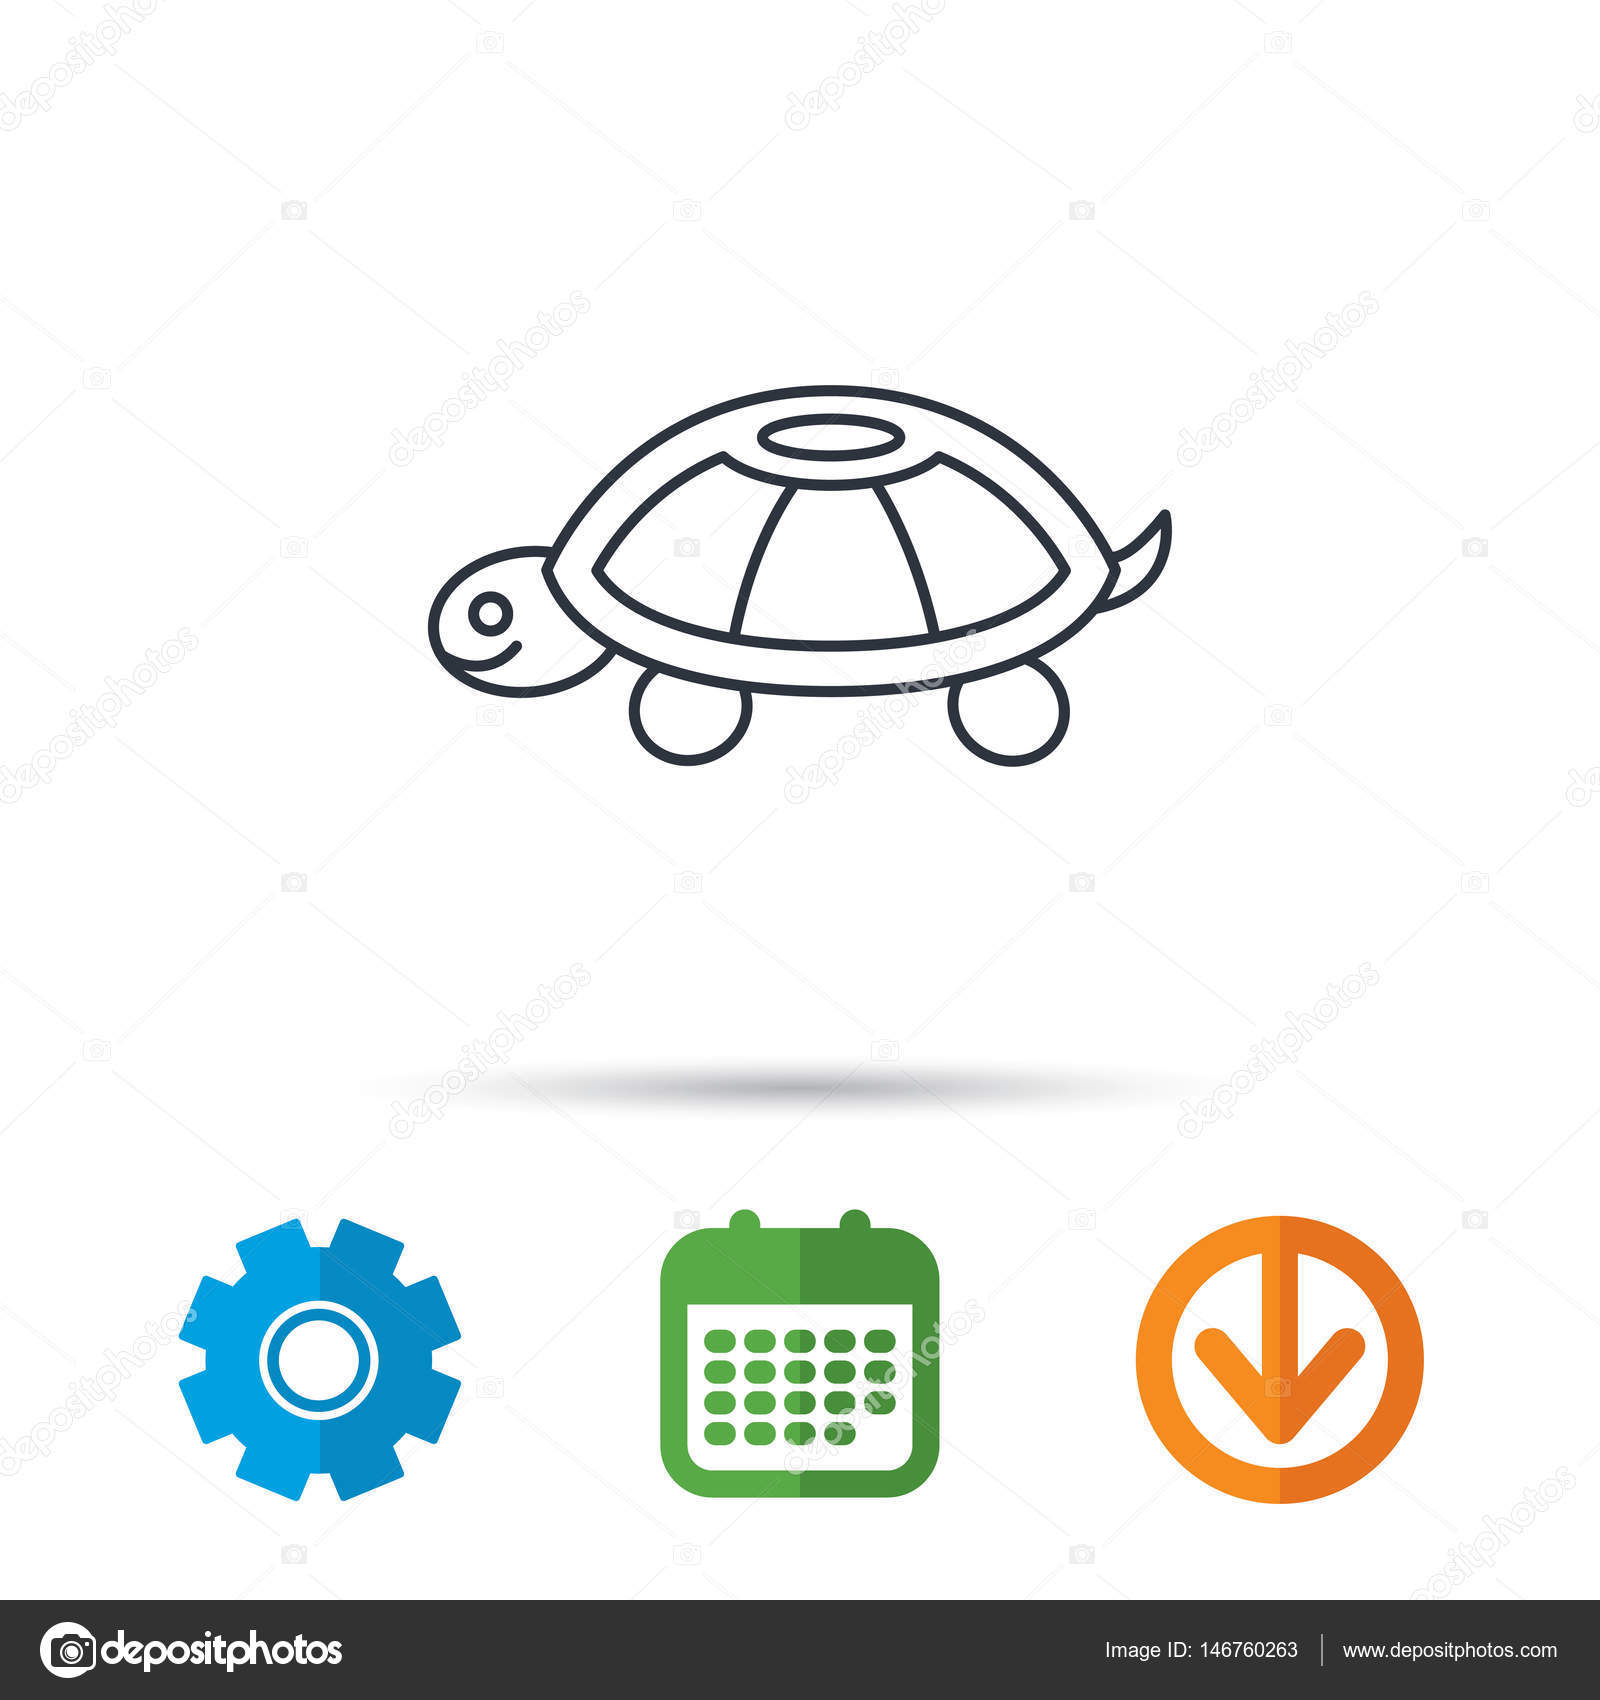 Turtle icon tortoise sign stock vector tanyastock 146760263 turtle icon tortoise sign tortoiseshell symbol calendar cogwheel and download arrow signs colored flat web icons vector vector by tanyastock biocorpaavc